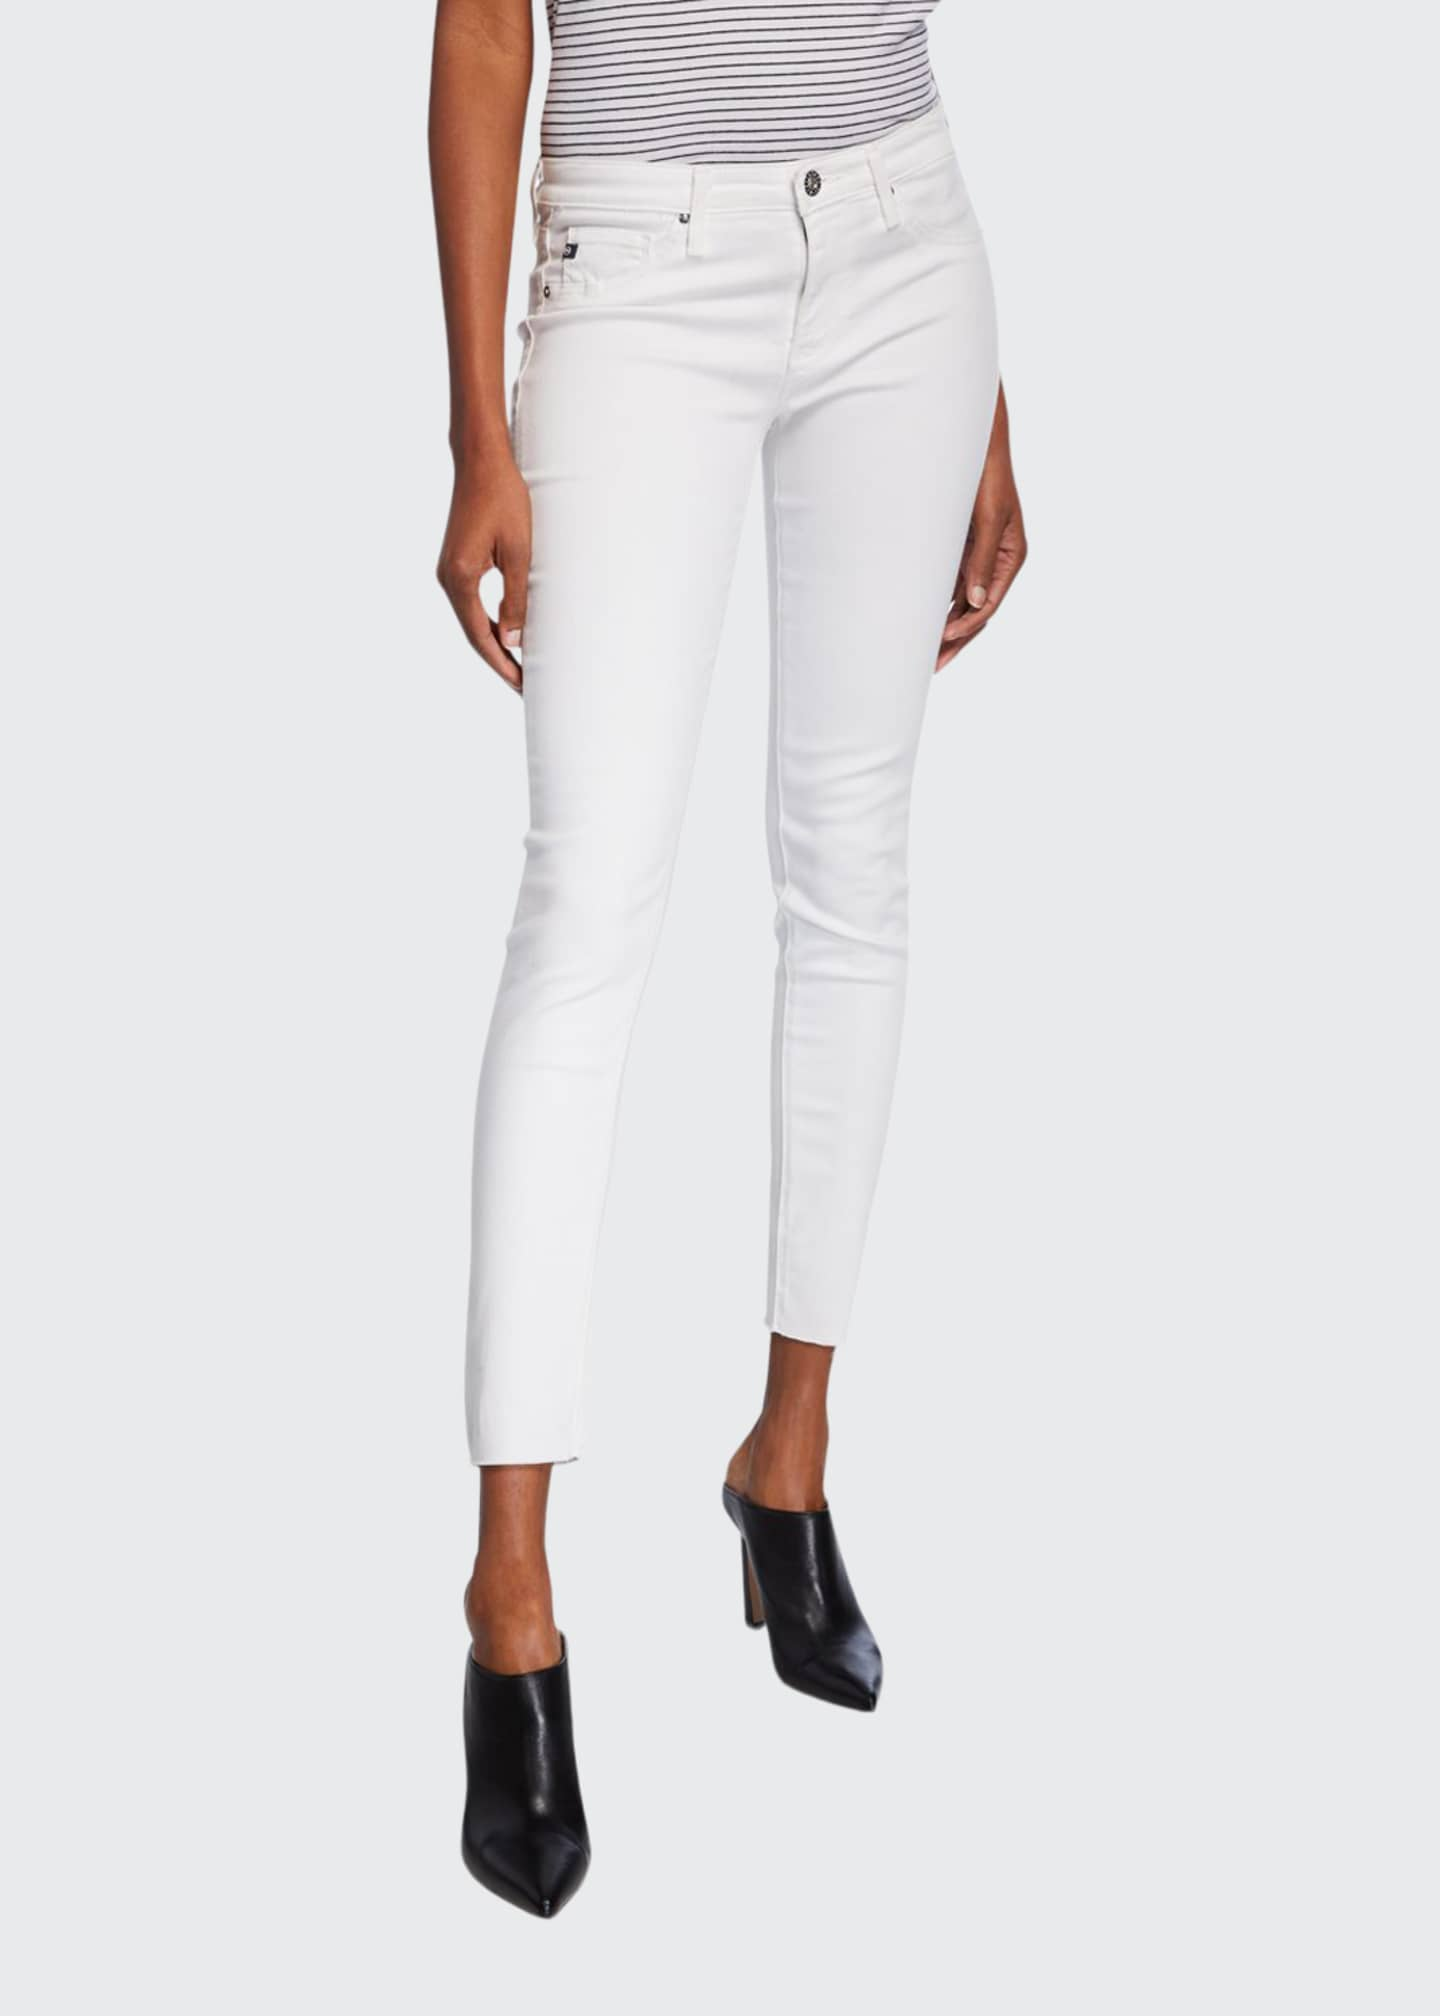 AG The Legging Ankle Cropped Skinny Jeans